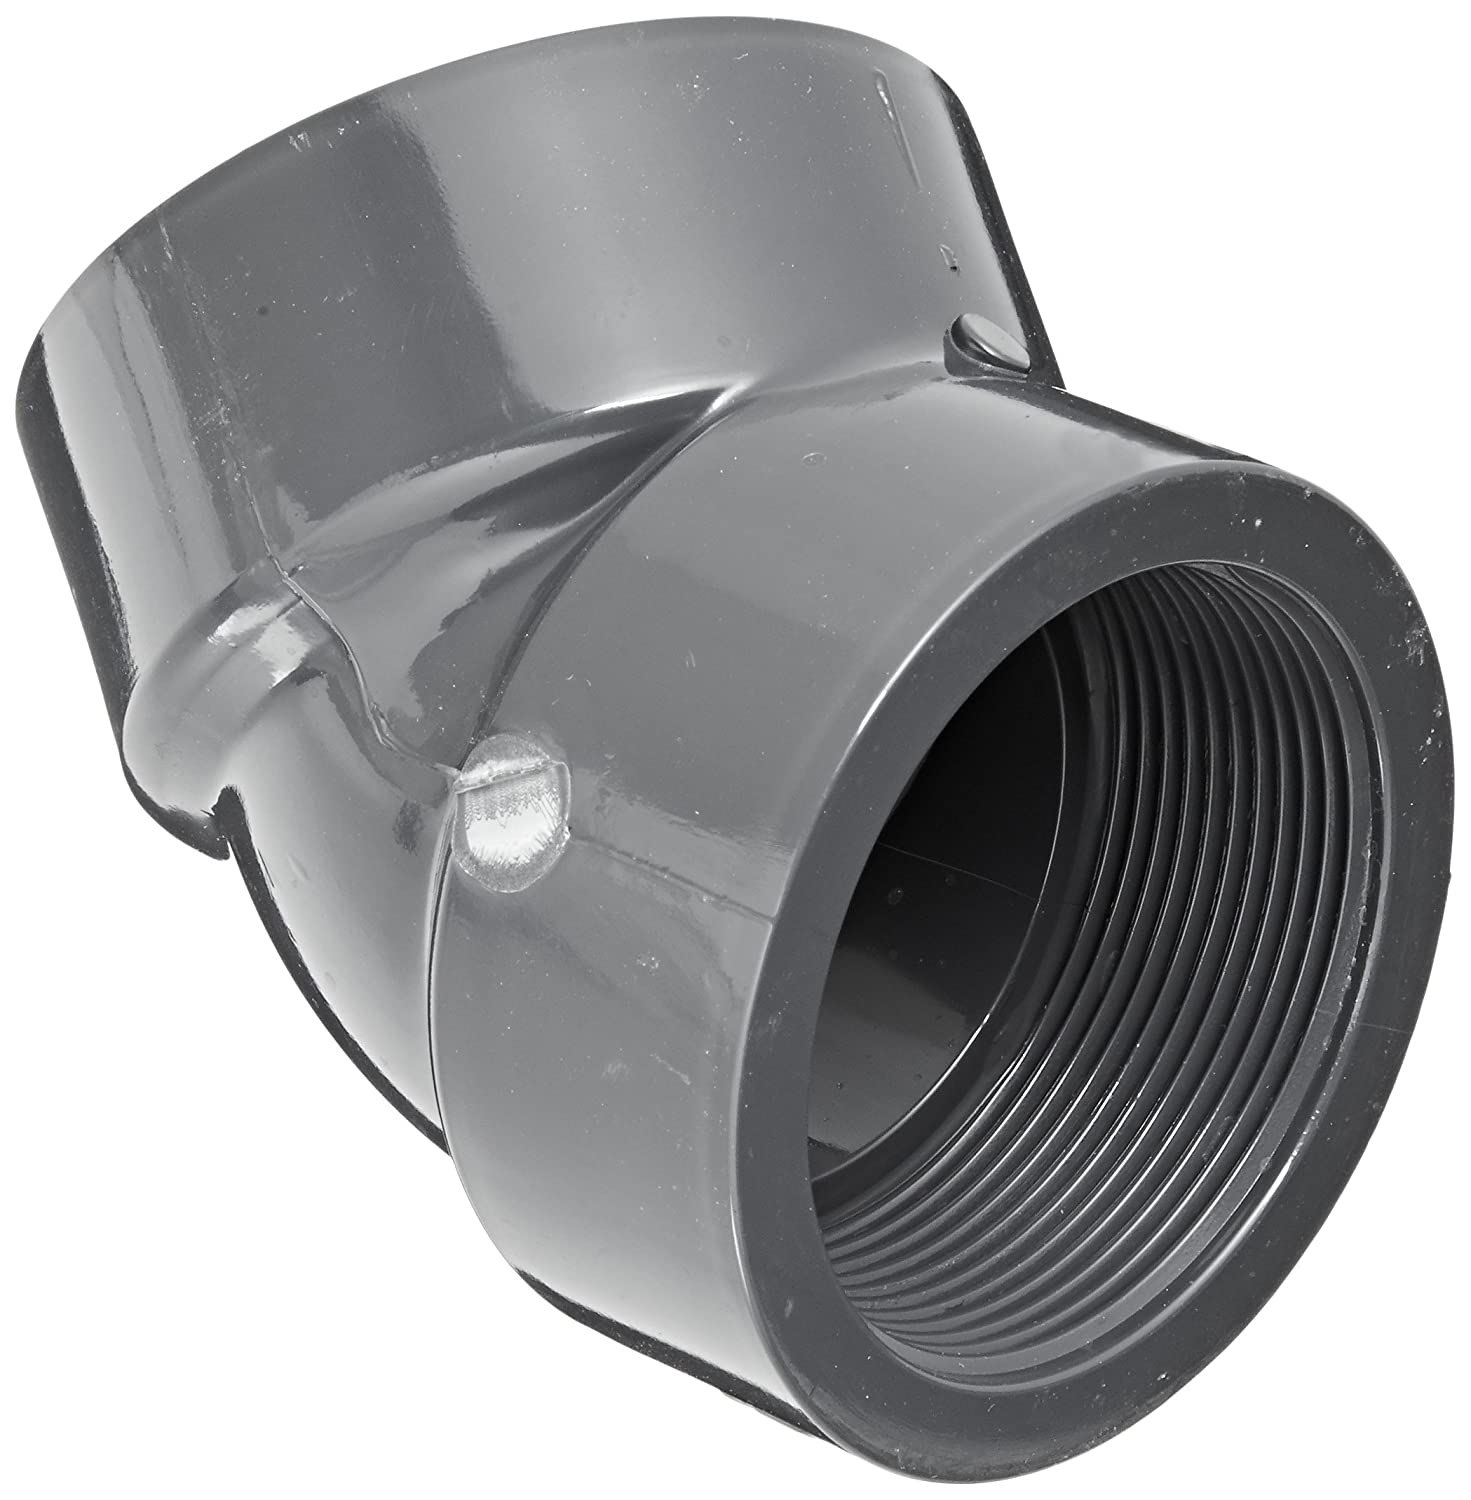 Spears 819 Series PVC Pipe Fitting 1 NPT Female 1 NPT Female Spears Manufacturing 819-010 Schedule 80 45 Degree Elbow